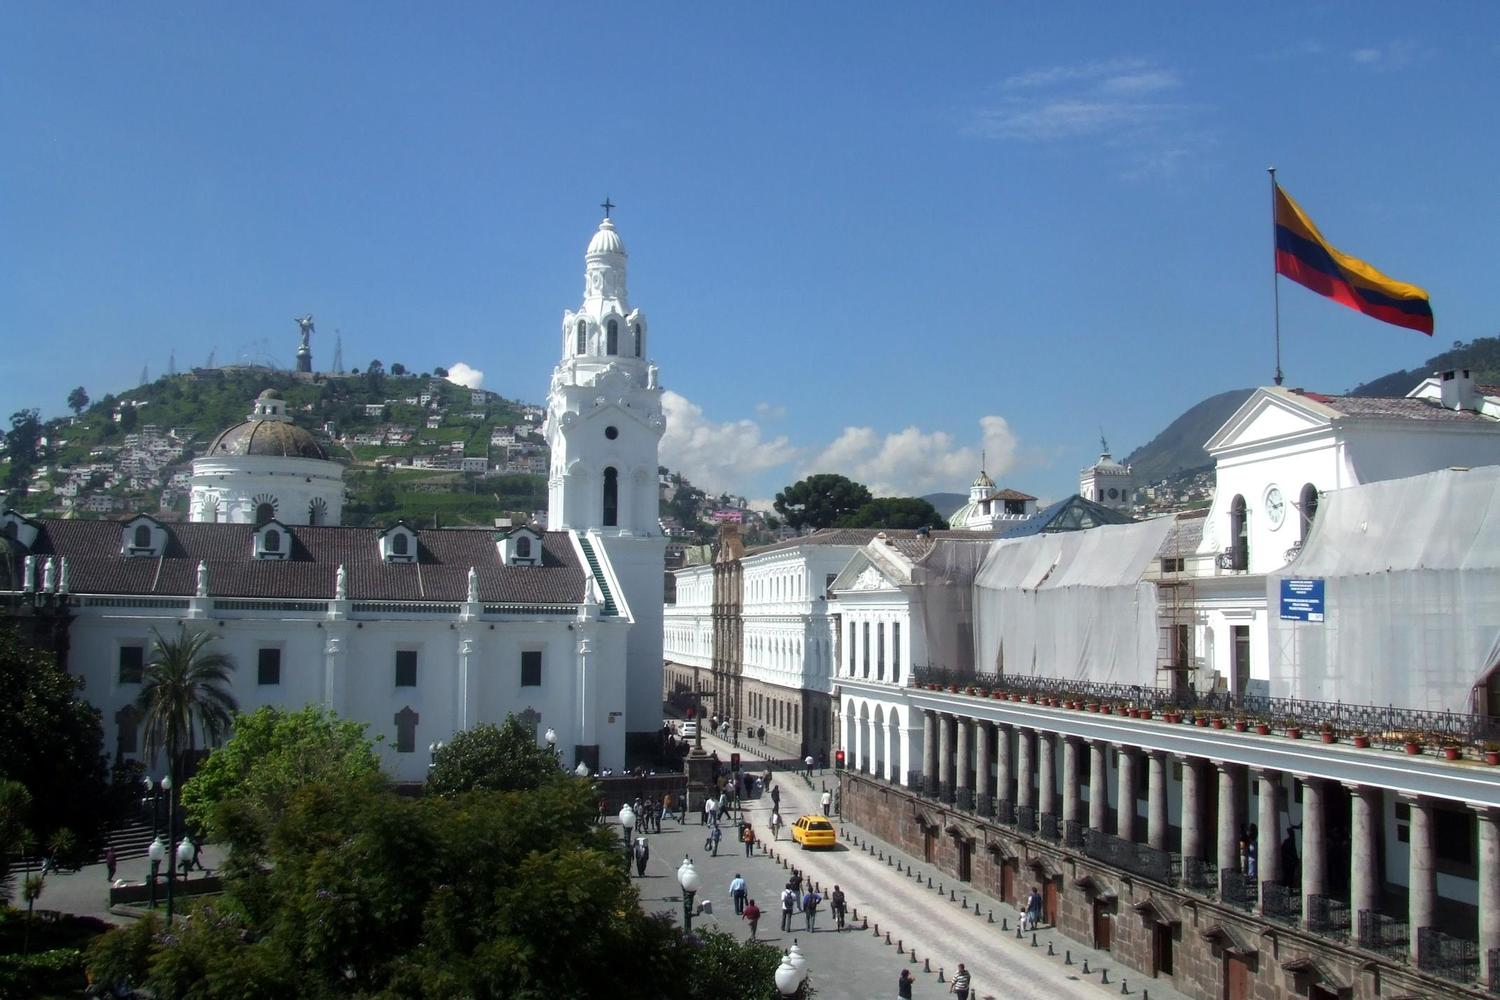 The colonial heart of Quito